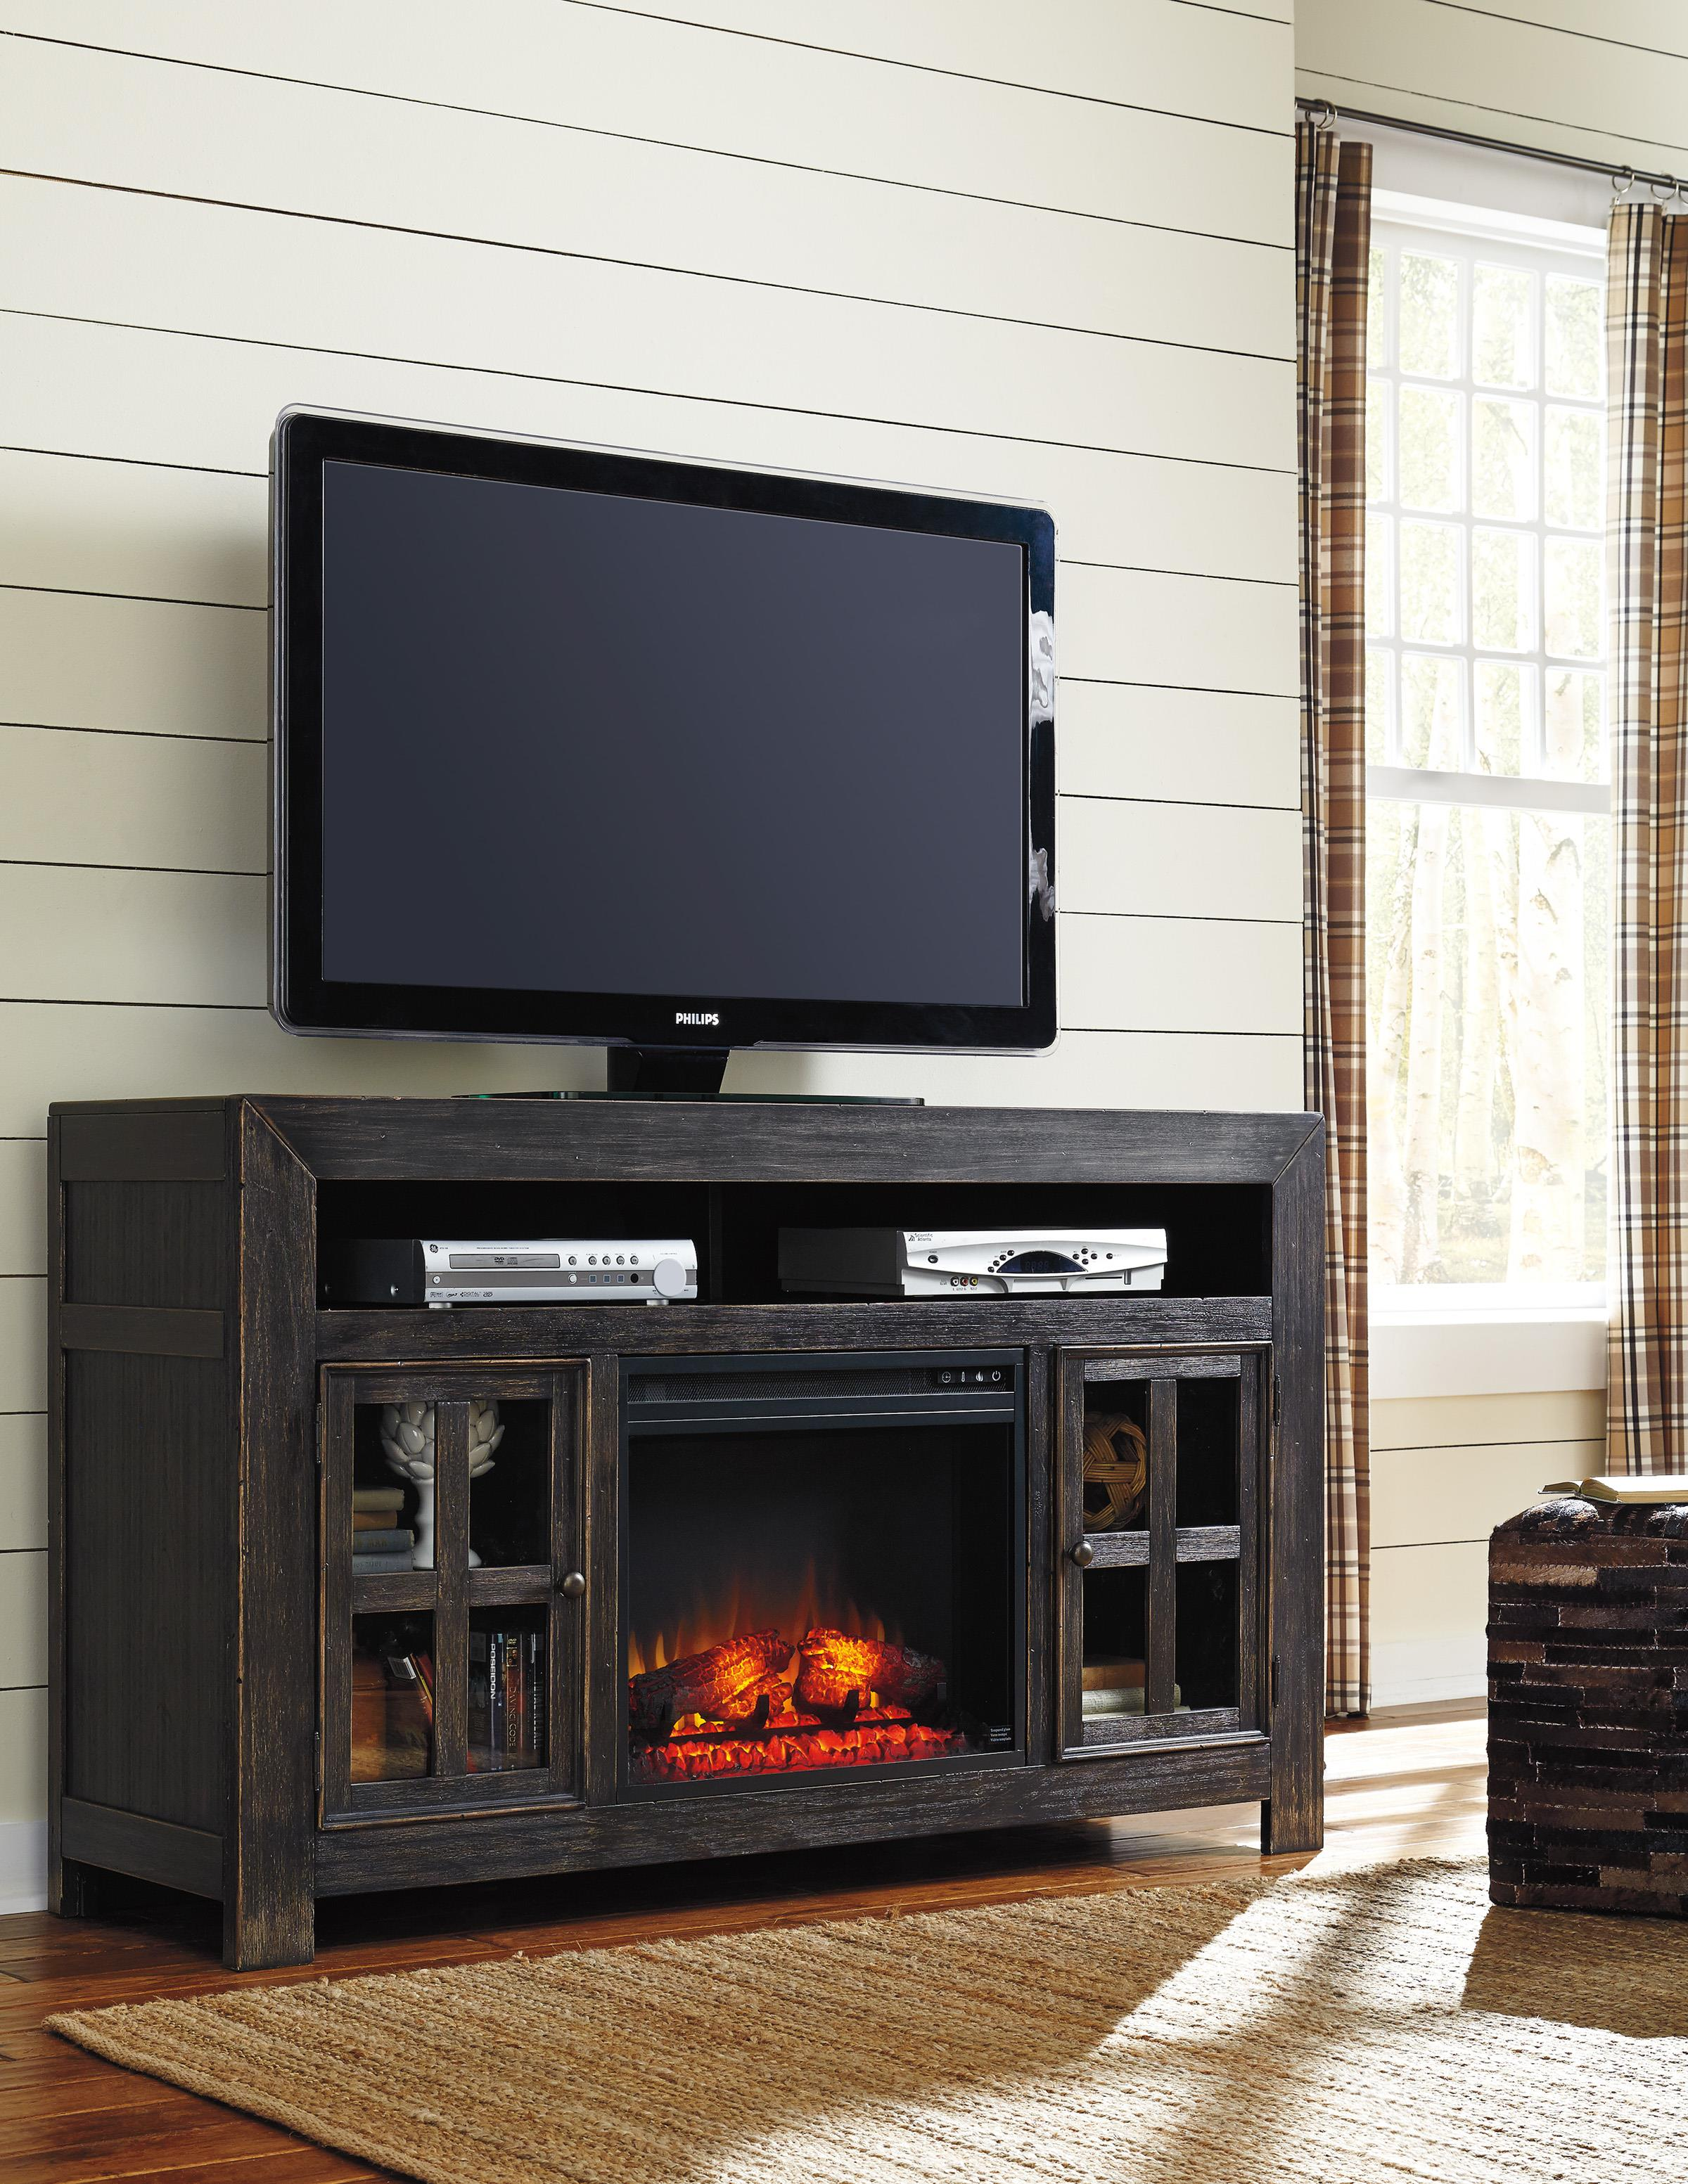 Signature Design By Ashley Gavelston Distressed Black Large Tv Stand With Electric Fireplace